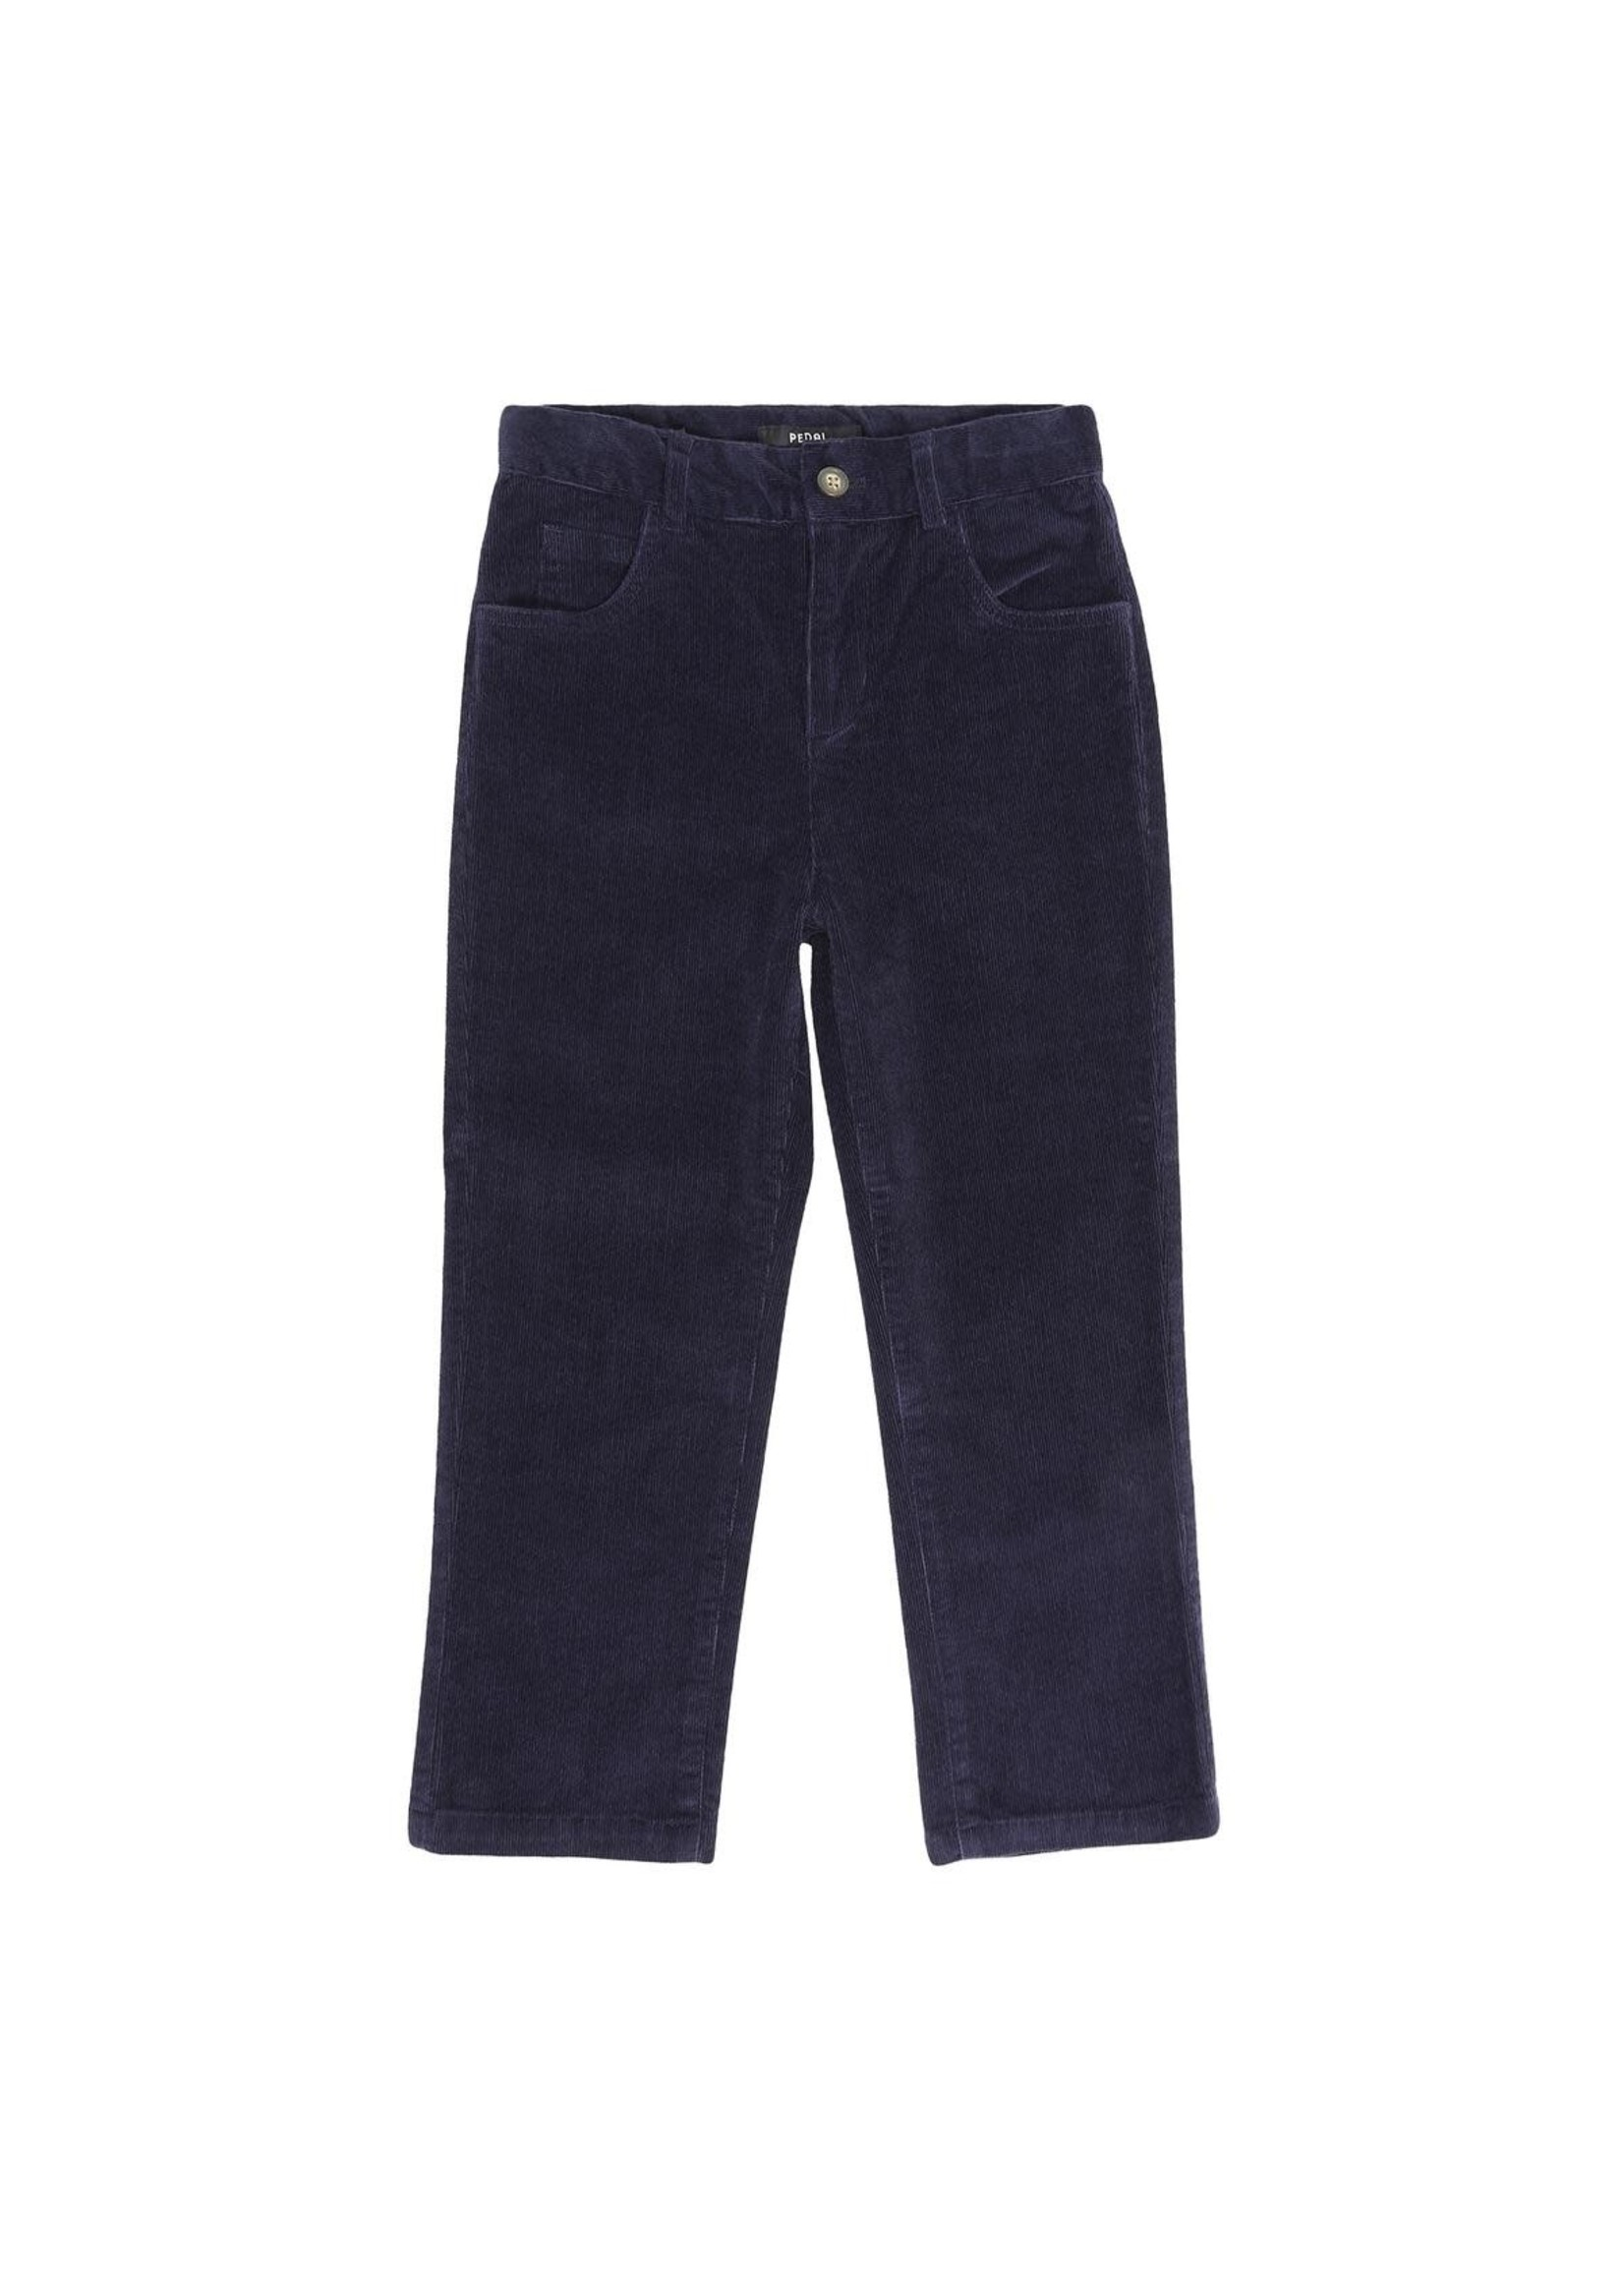 Pedal Pedal stretch navy cord